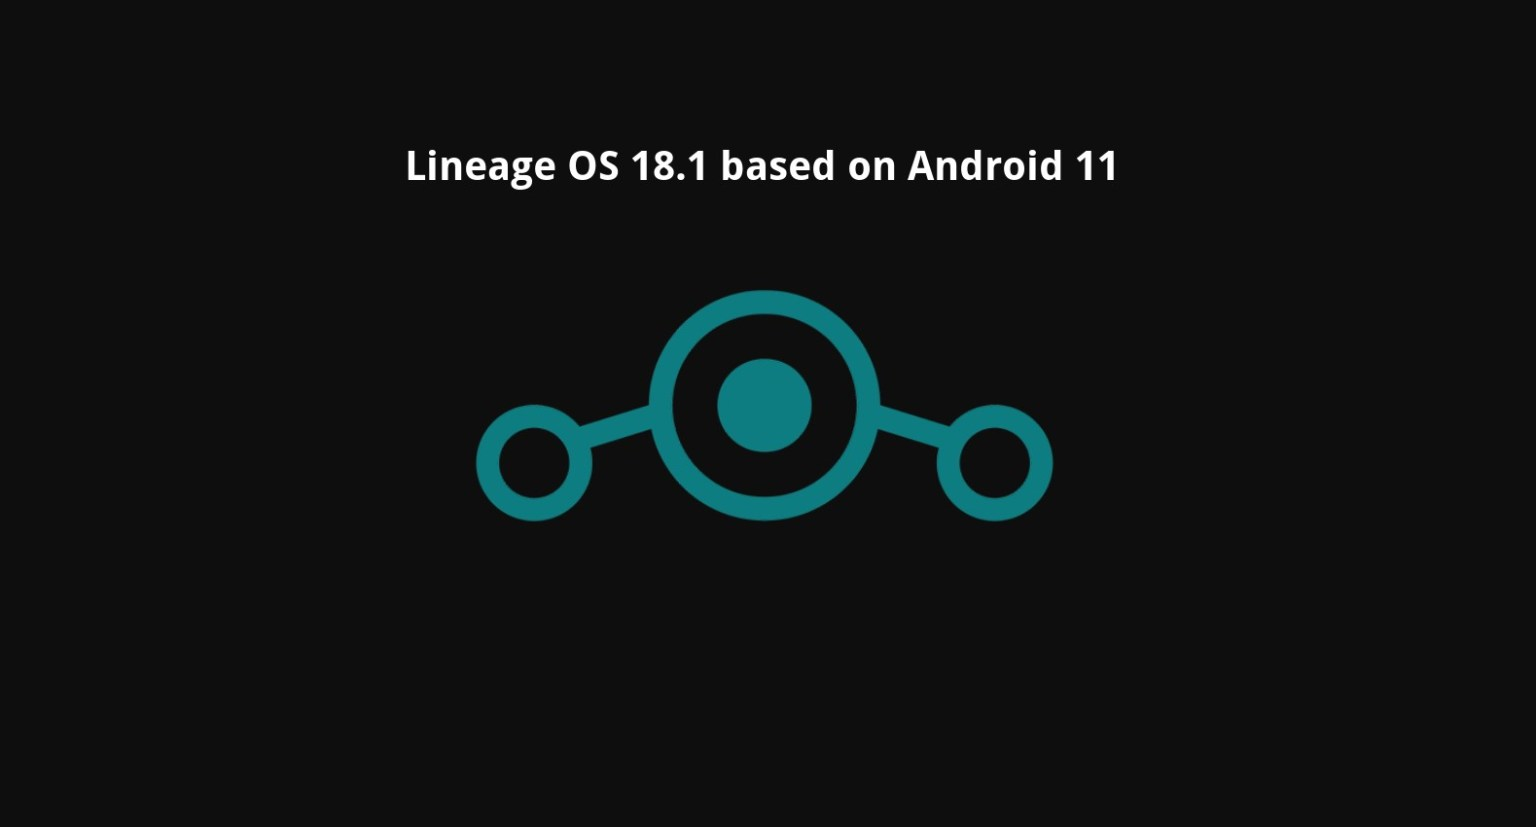 Download Lineage OS 18.1 based on Android 11 for Samsung Galaxy S7 and S7 Edge